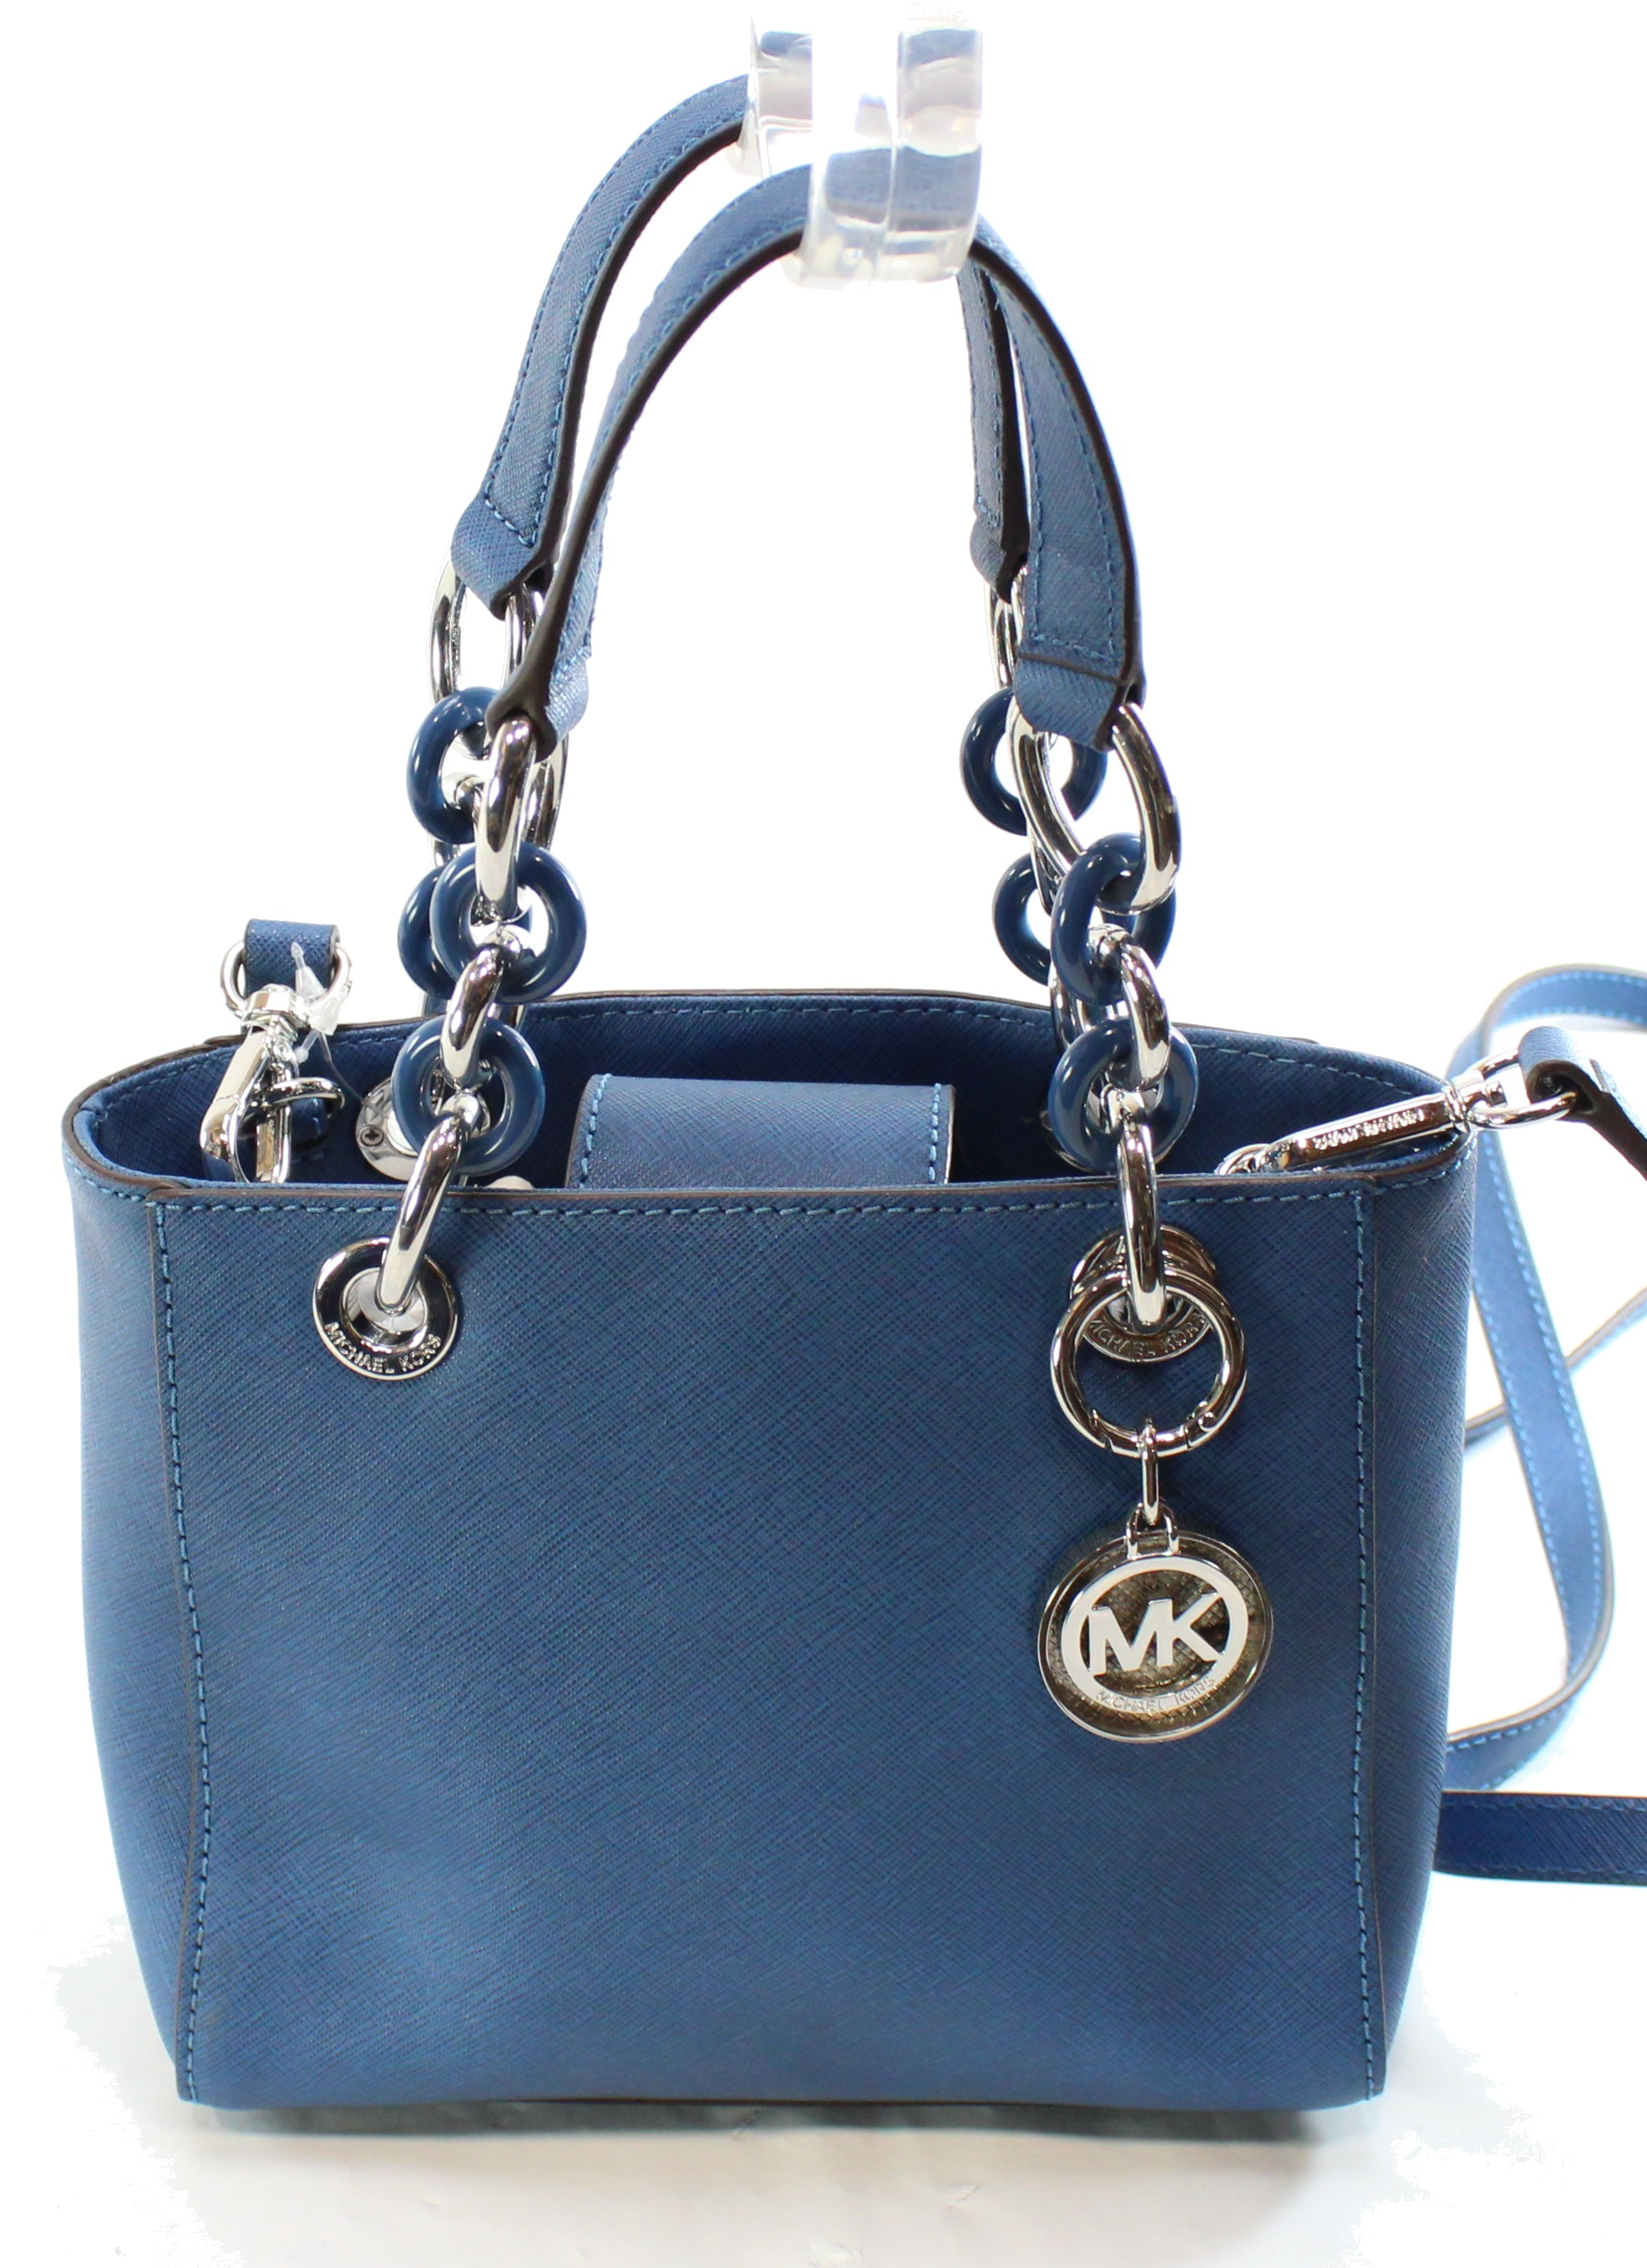 9297b0704c43 Small Blue Michael Kors Purse | Stanford Center for Opportunity ...